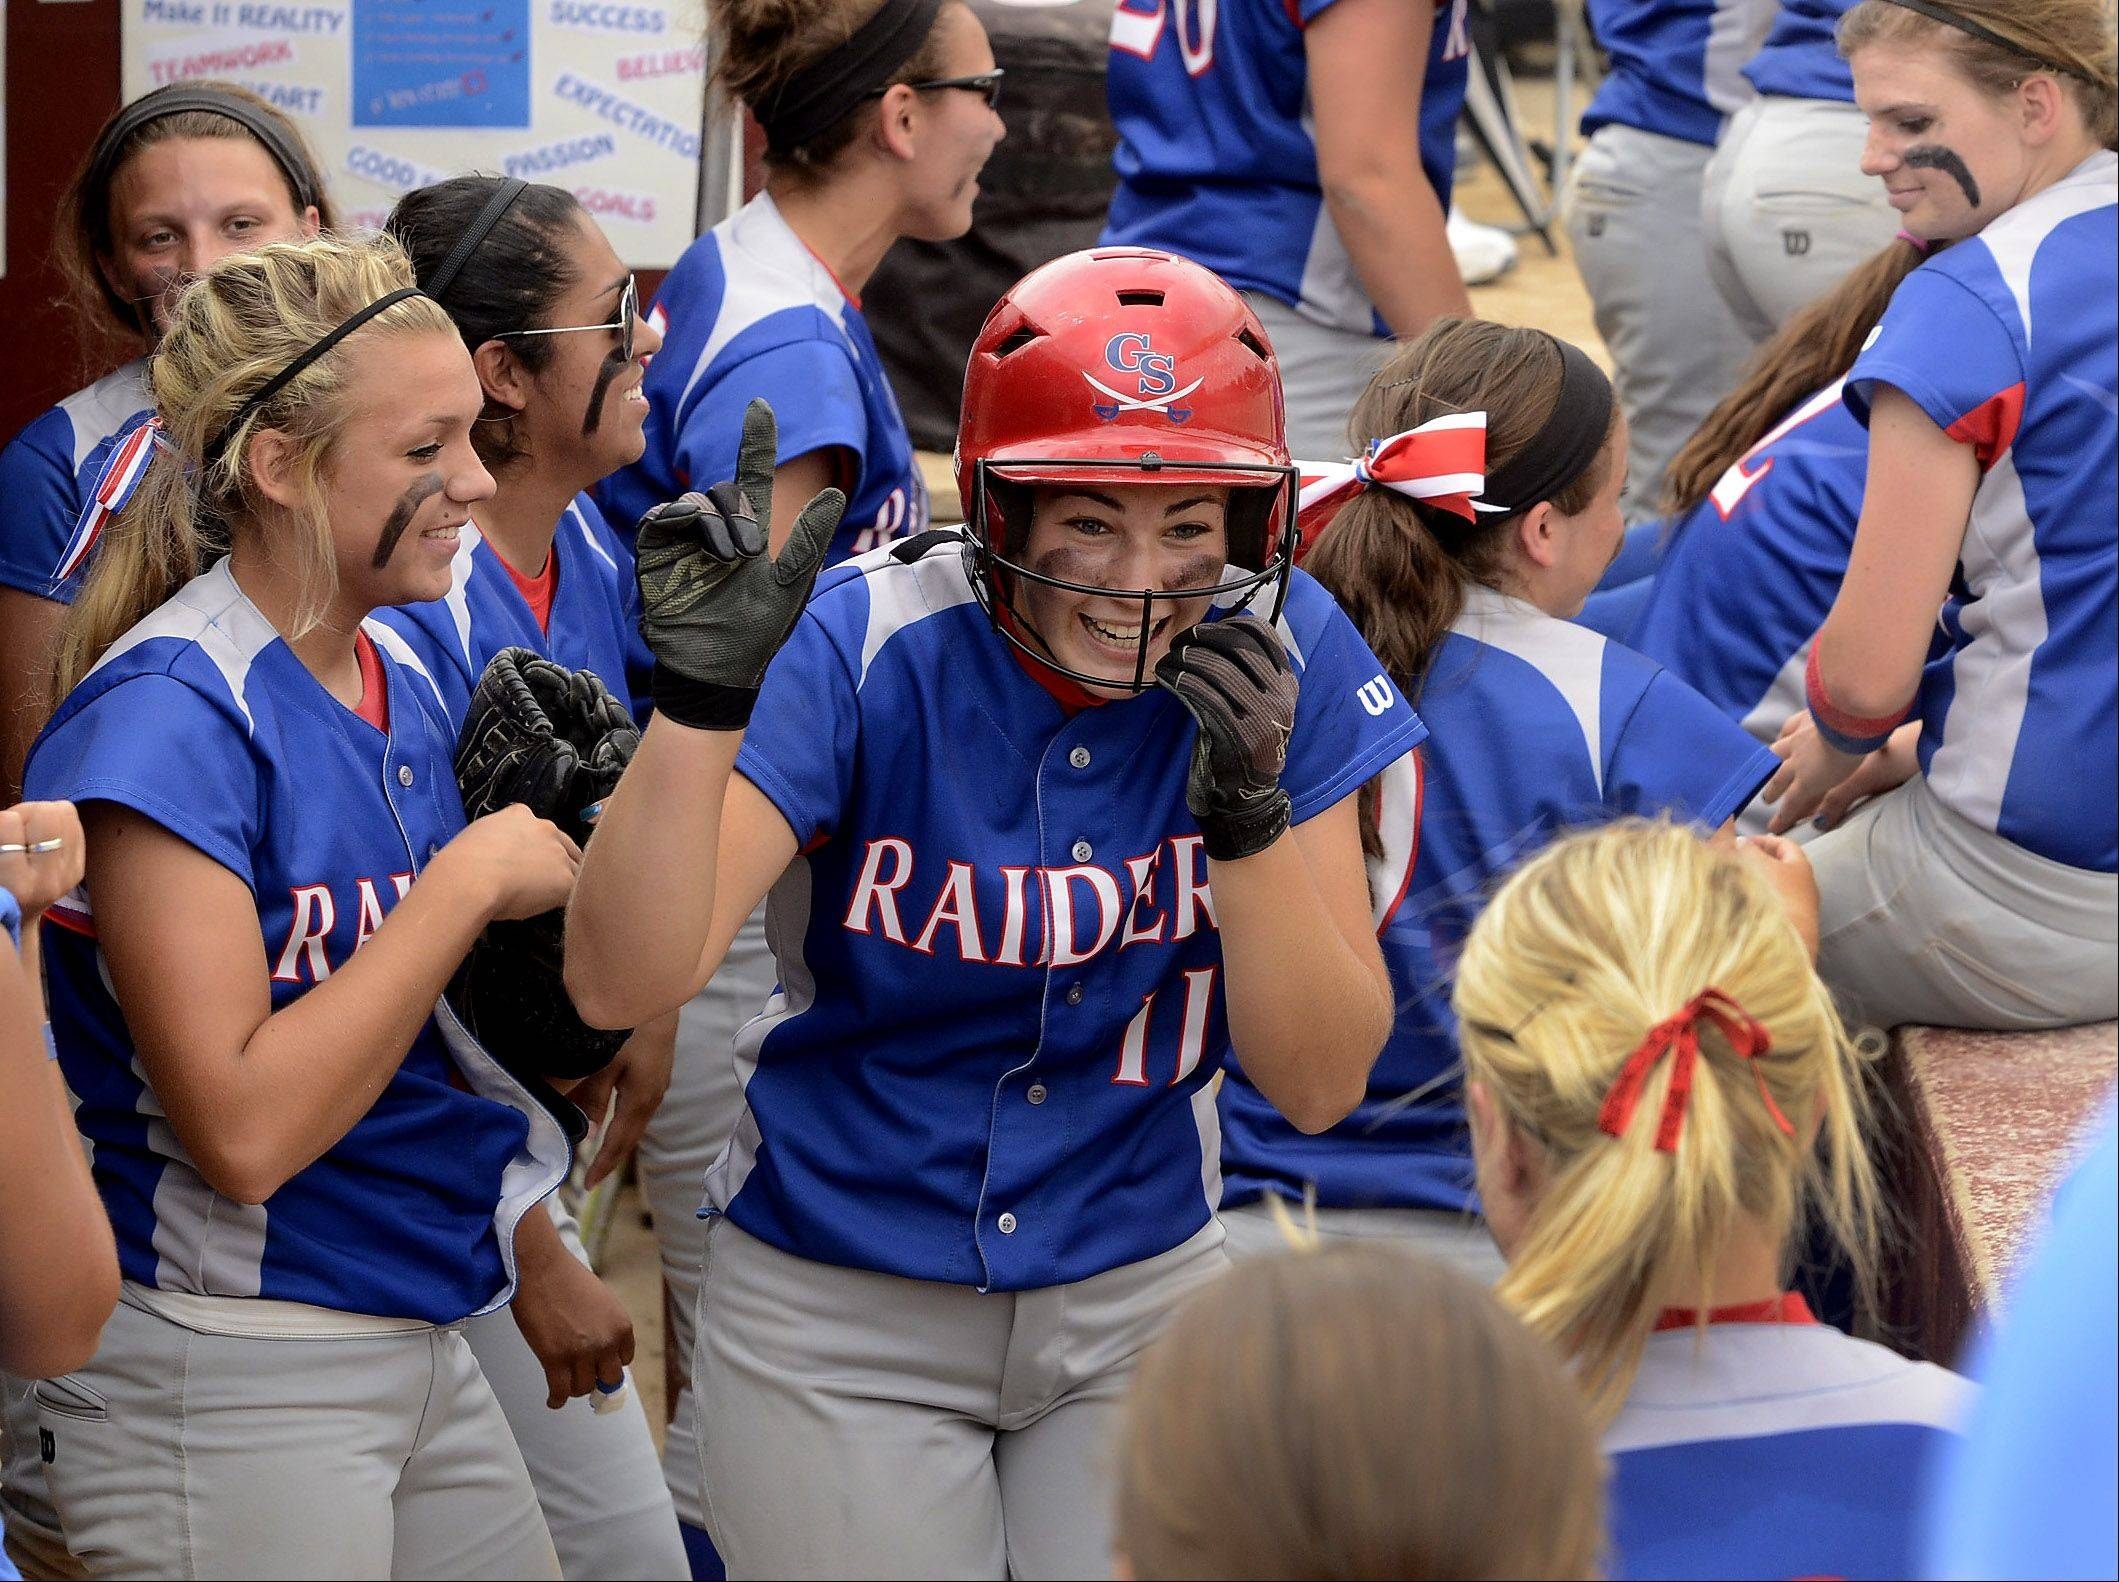 Glenbard South's Jane Trzaska celebrates with teammates in the dugout after tripling to right in the top of the seventh for the eventual game winning hit in the Class 3A state championship game between Glenbard South and Alton Marquette.